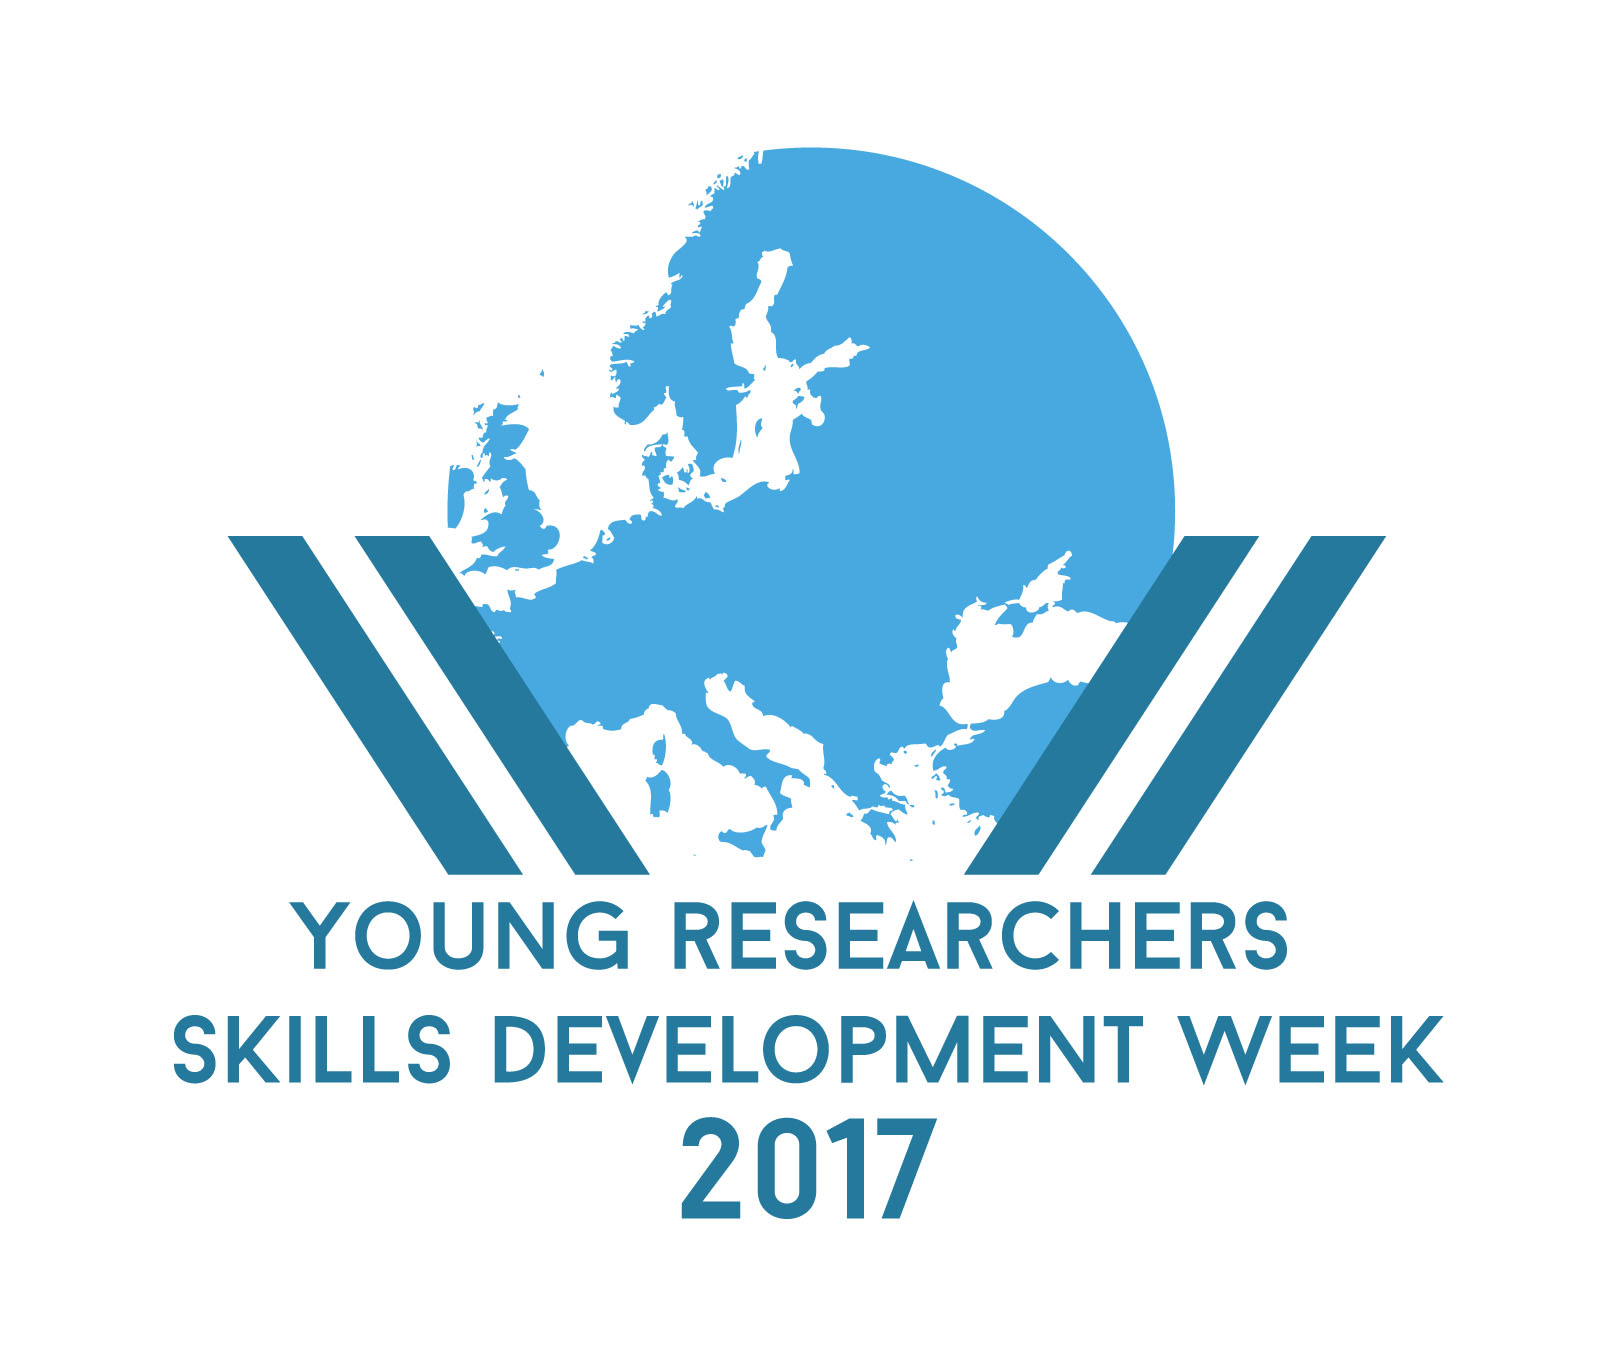 Call for Papers_11th Doctoral Students Conference under the 2nd Young Researchers Skills Development Week